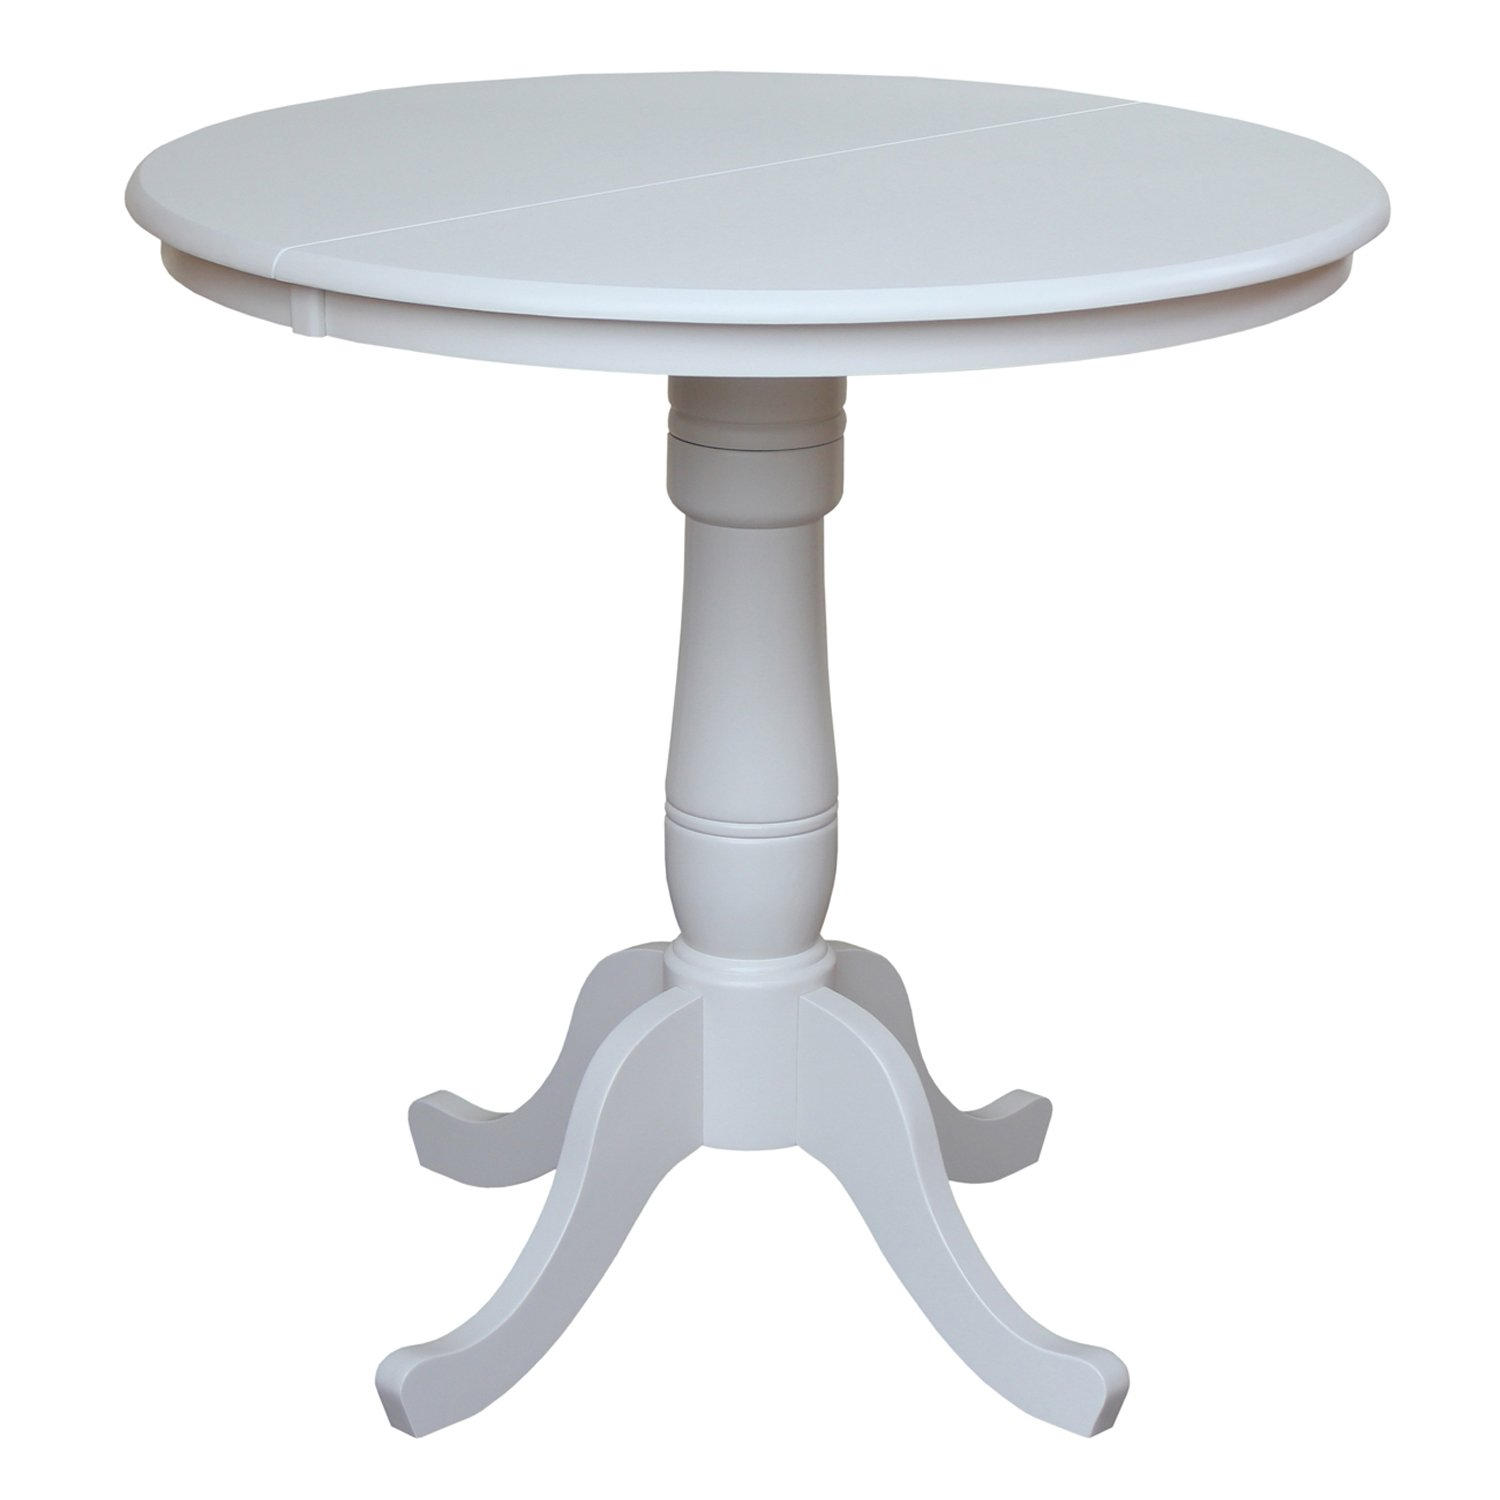 International Concepts 36-Inch Round Top Pedestal Table with 12-Inch Leaf, 36-Inch Counter Height, Linen White